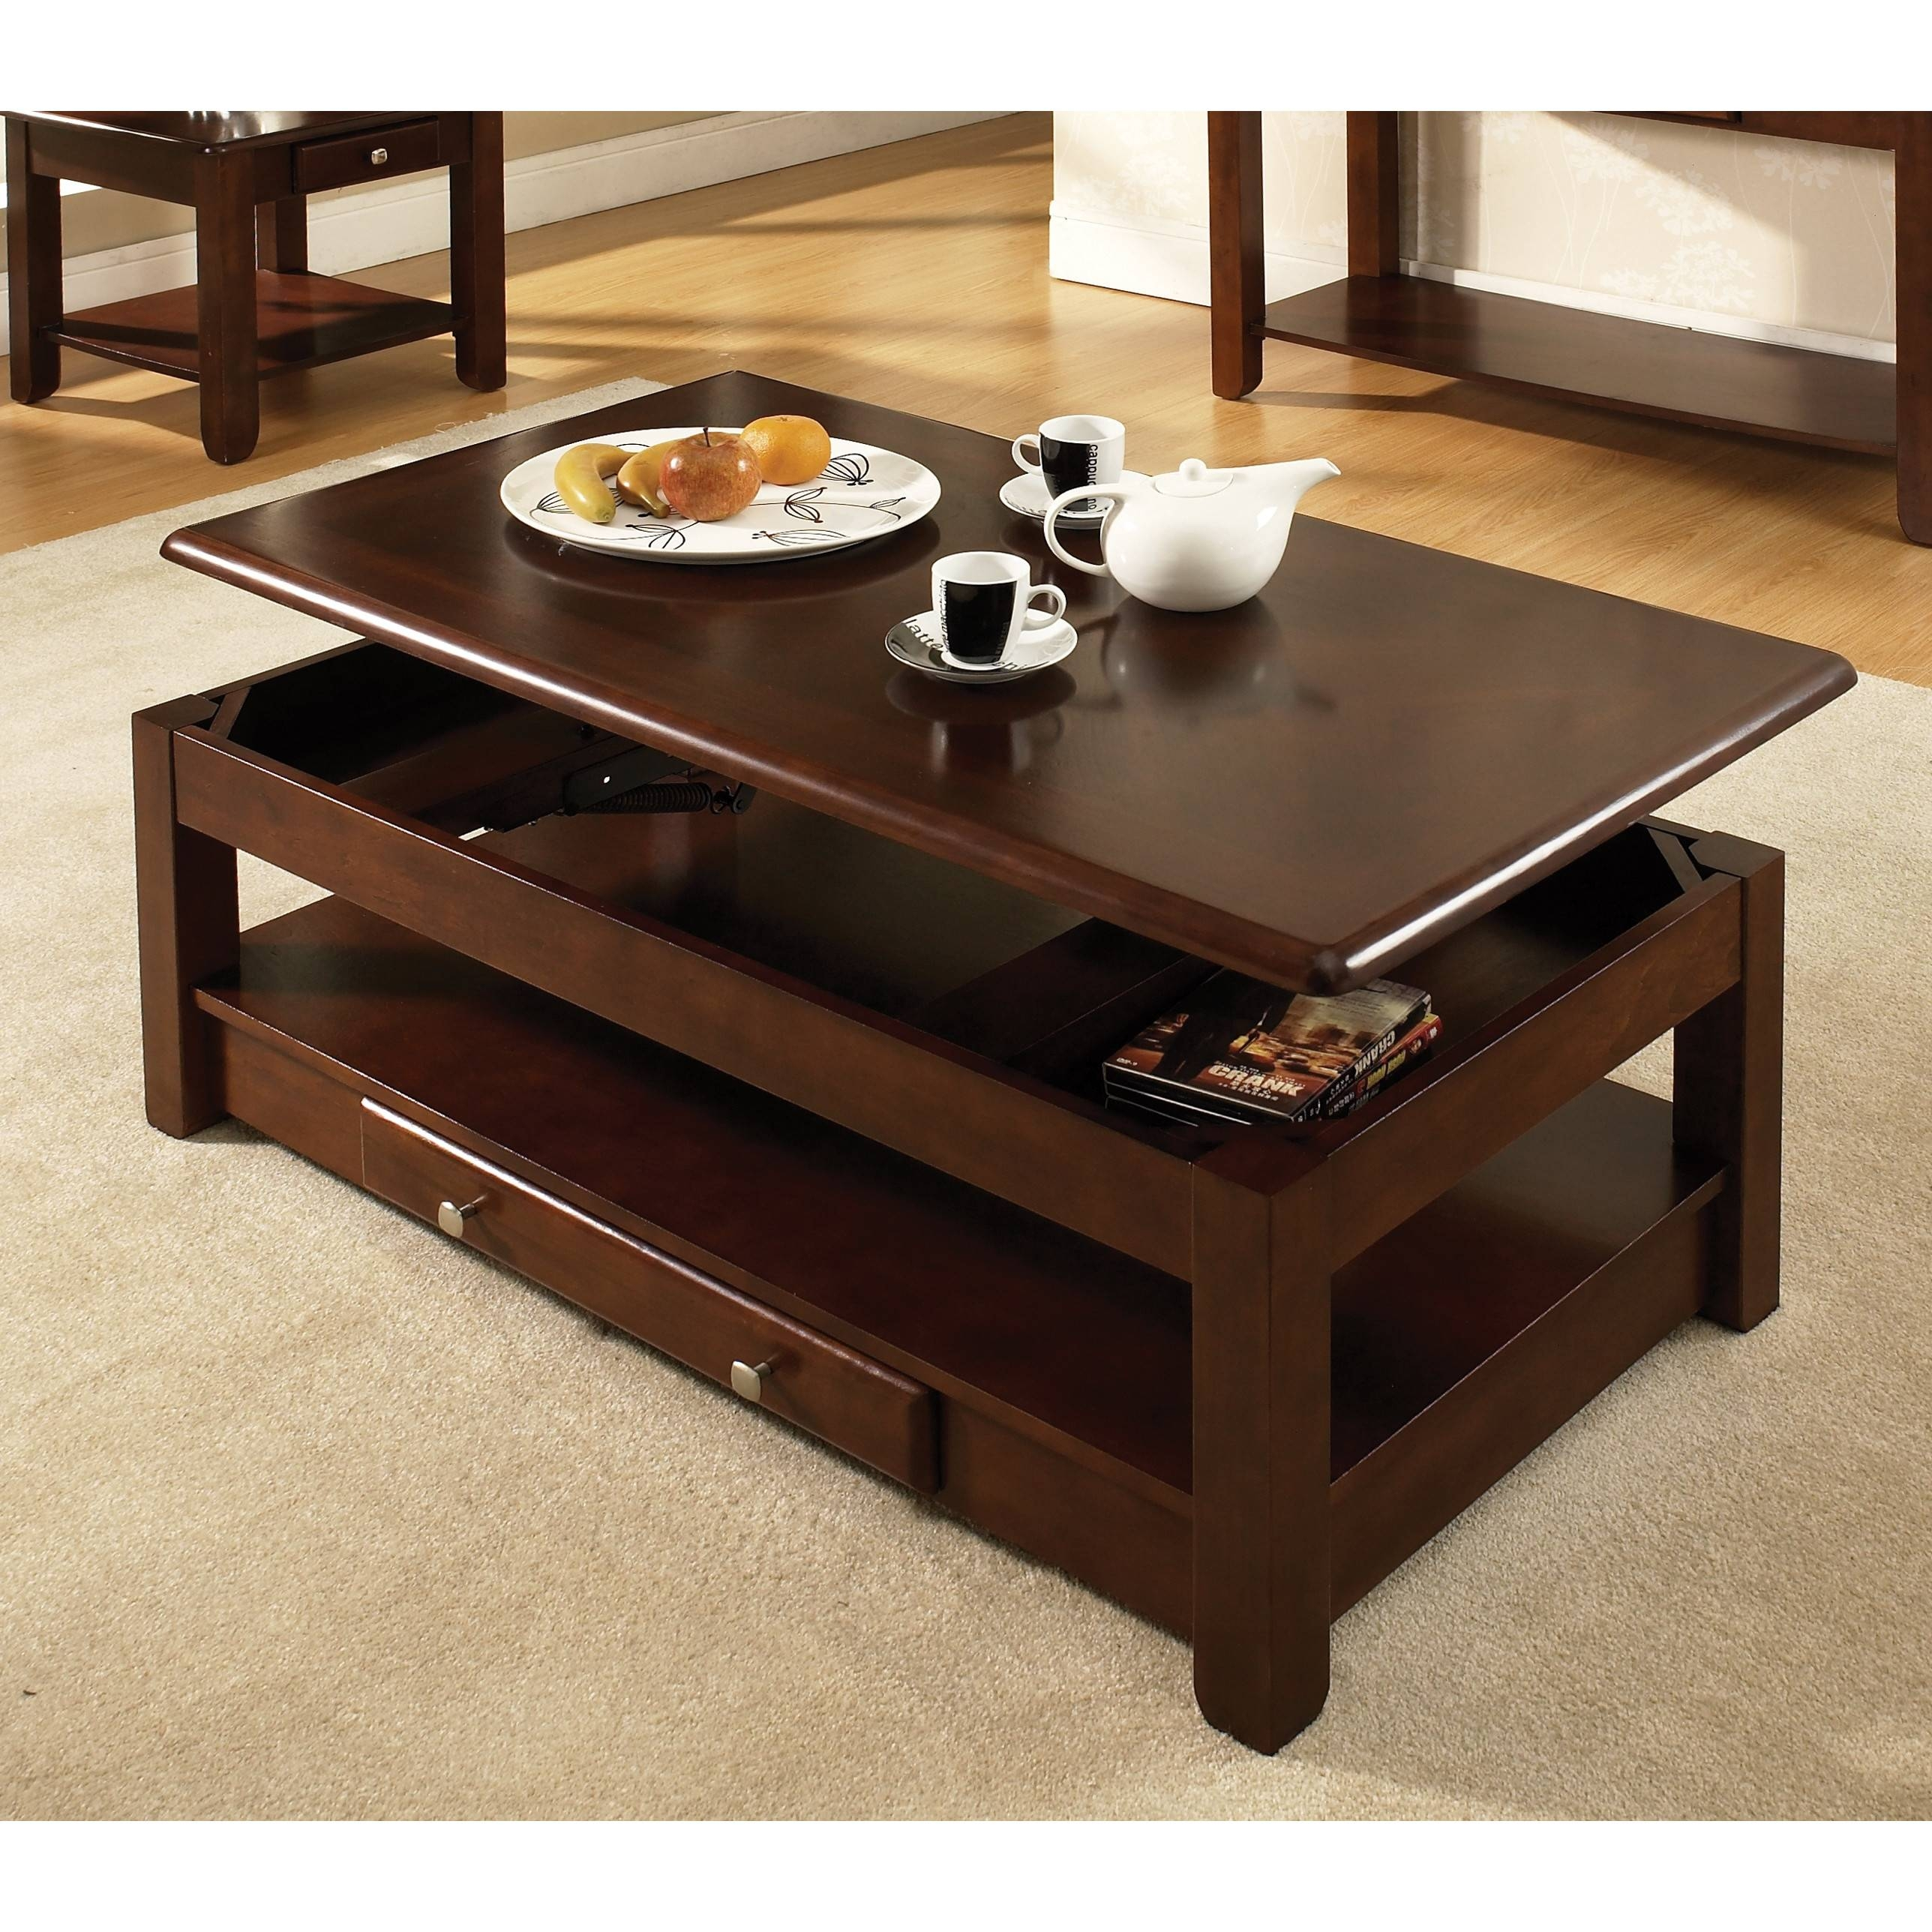 Lift Top Coffee Table - Lift Top Coffee Table With Unique Design for Raisable Coffee Tables (Image 21 of 30)